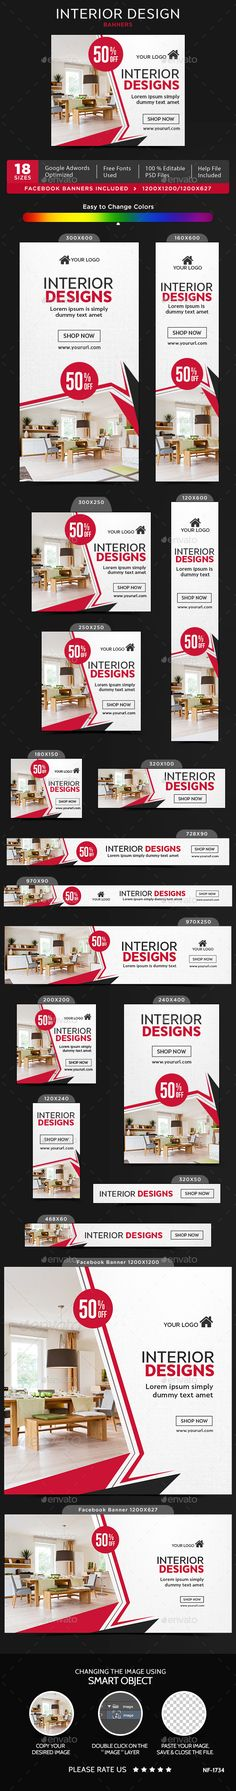 Interior #Design #Banners - Banners & Ads Web Elements Download here: https://graphicriver.net/item/interior-design-banners/19537163?ref=alena994